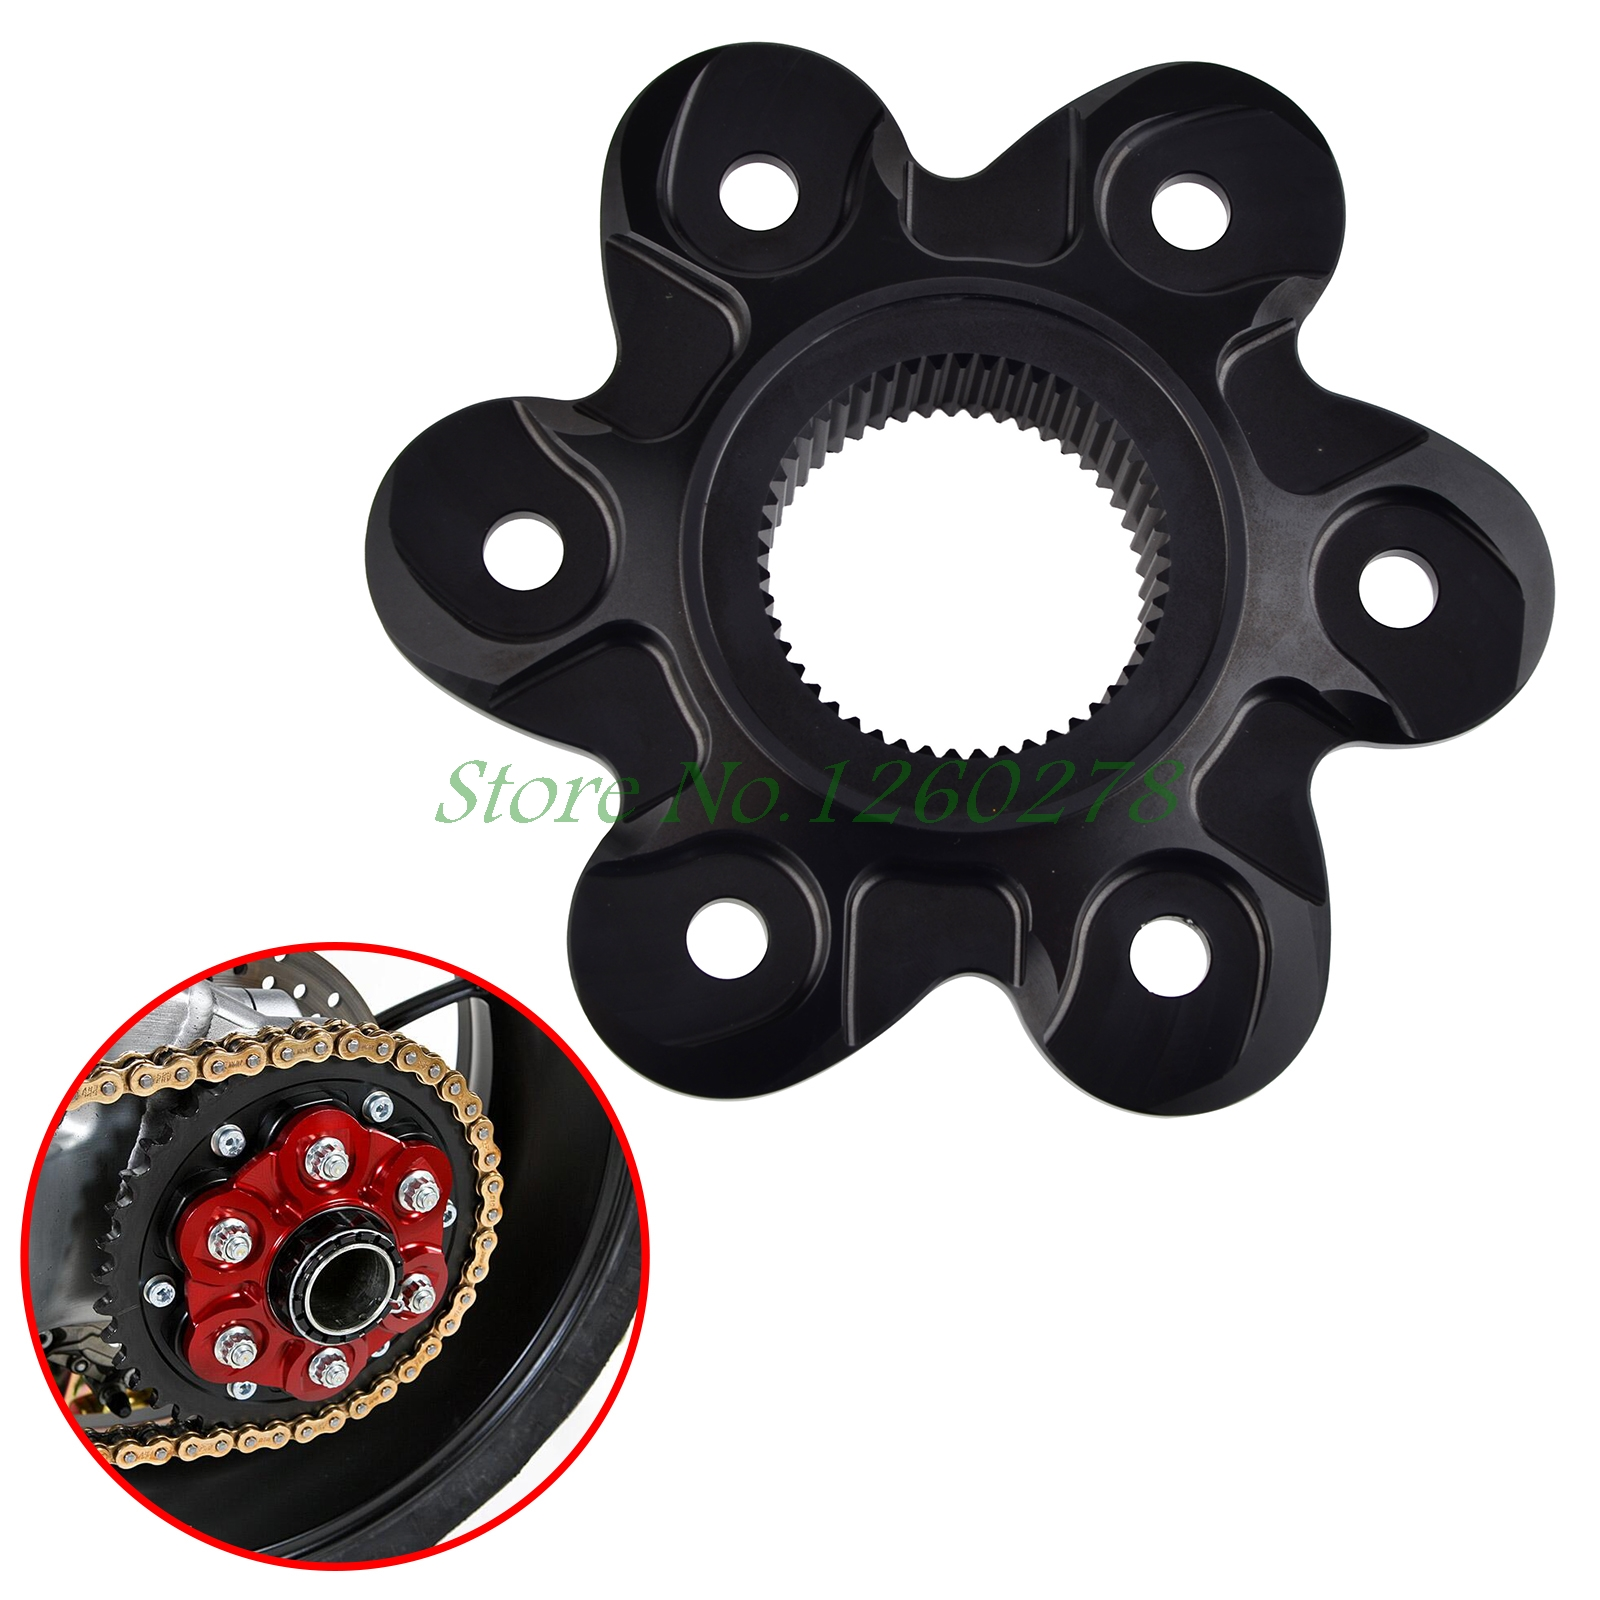 Motorcycle Rear Sprocket Cover Drive Flange Cover For Ducati 1098 1198 1199 1299 Monster 1200 Diavel Streetfighter free shipping motorcycle carbon fibre rear shock cover and heel guard for ducati 899 959 1199 1299 motorbike motocross